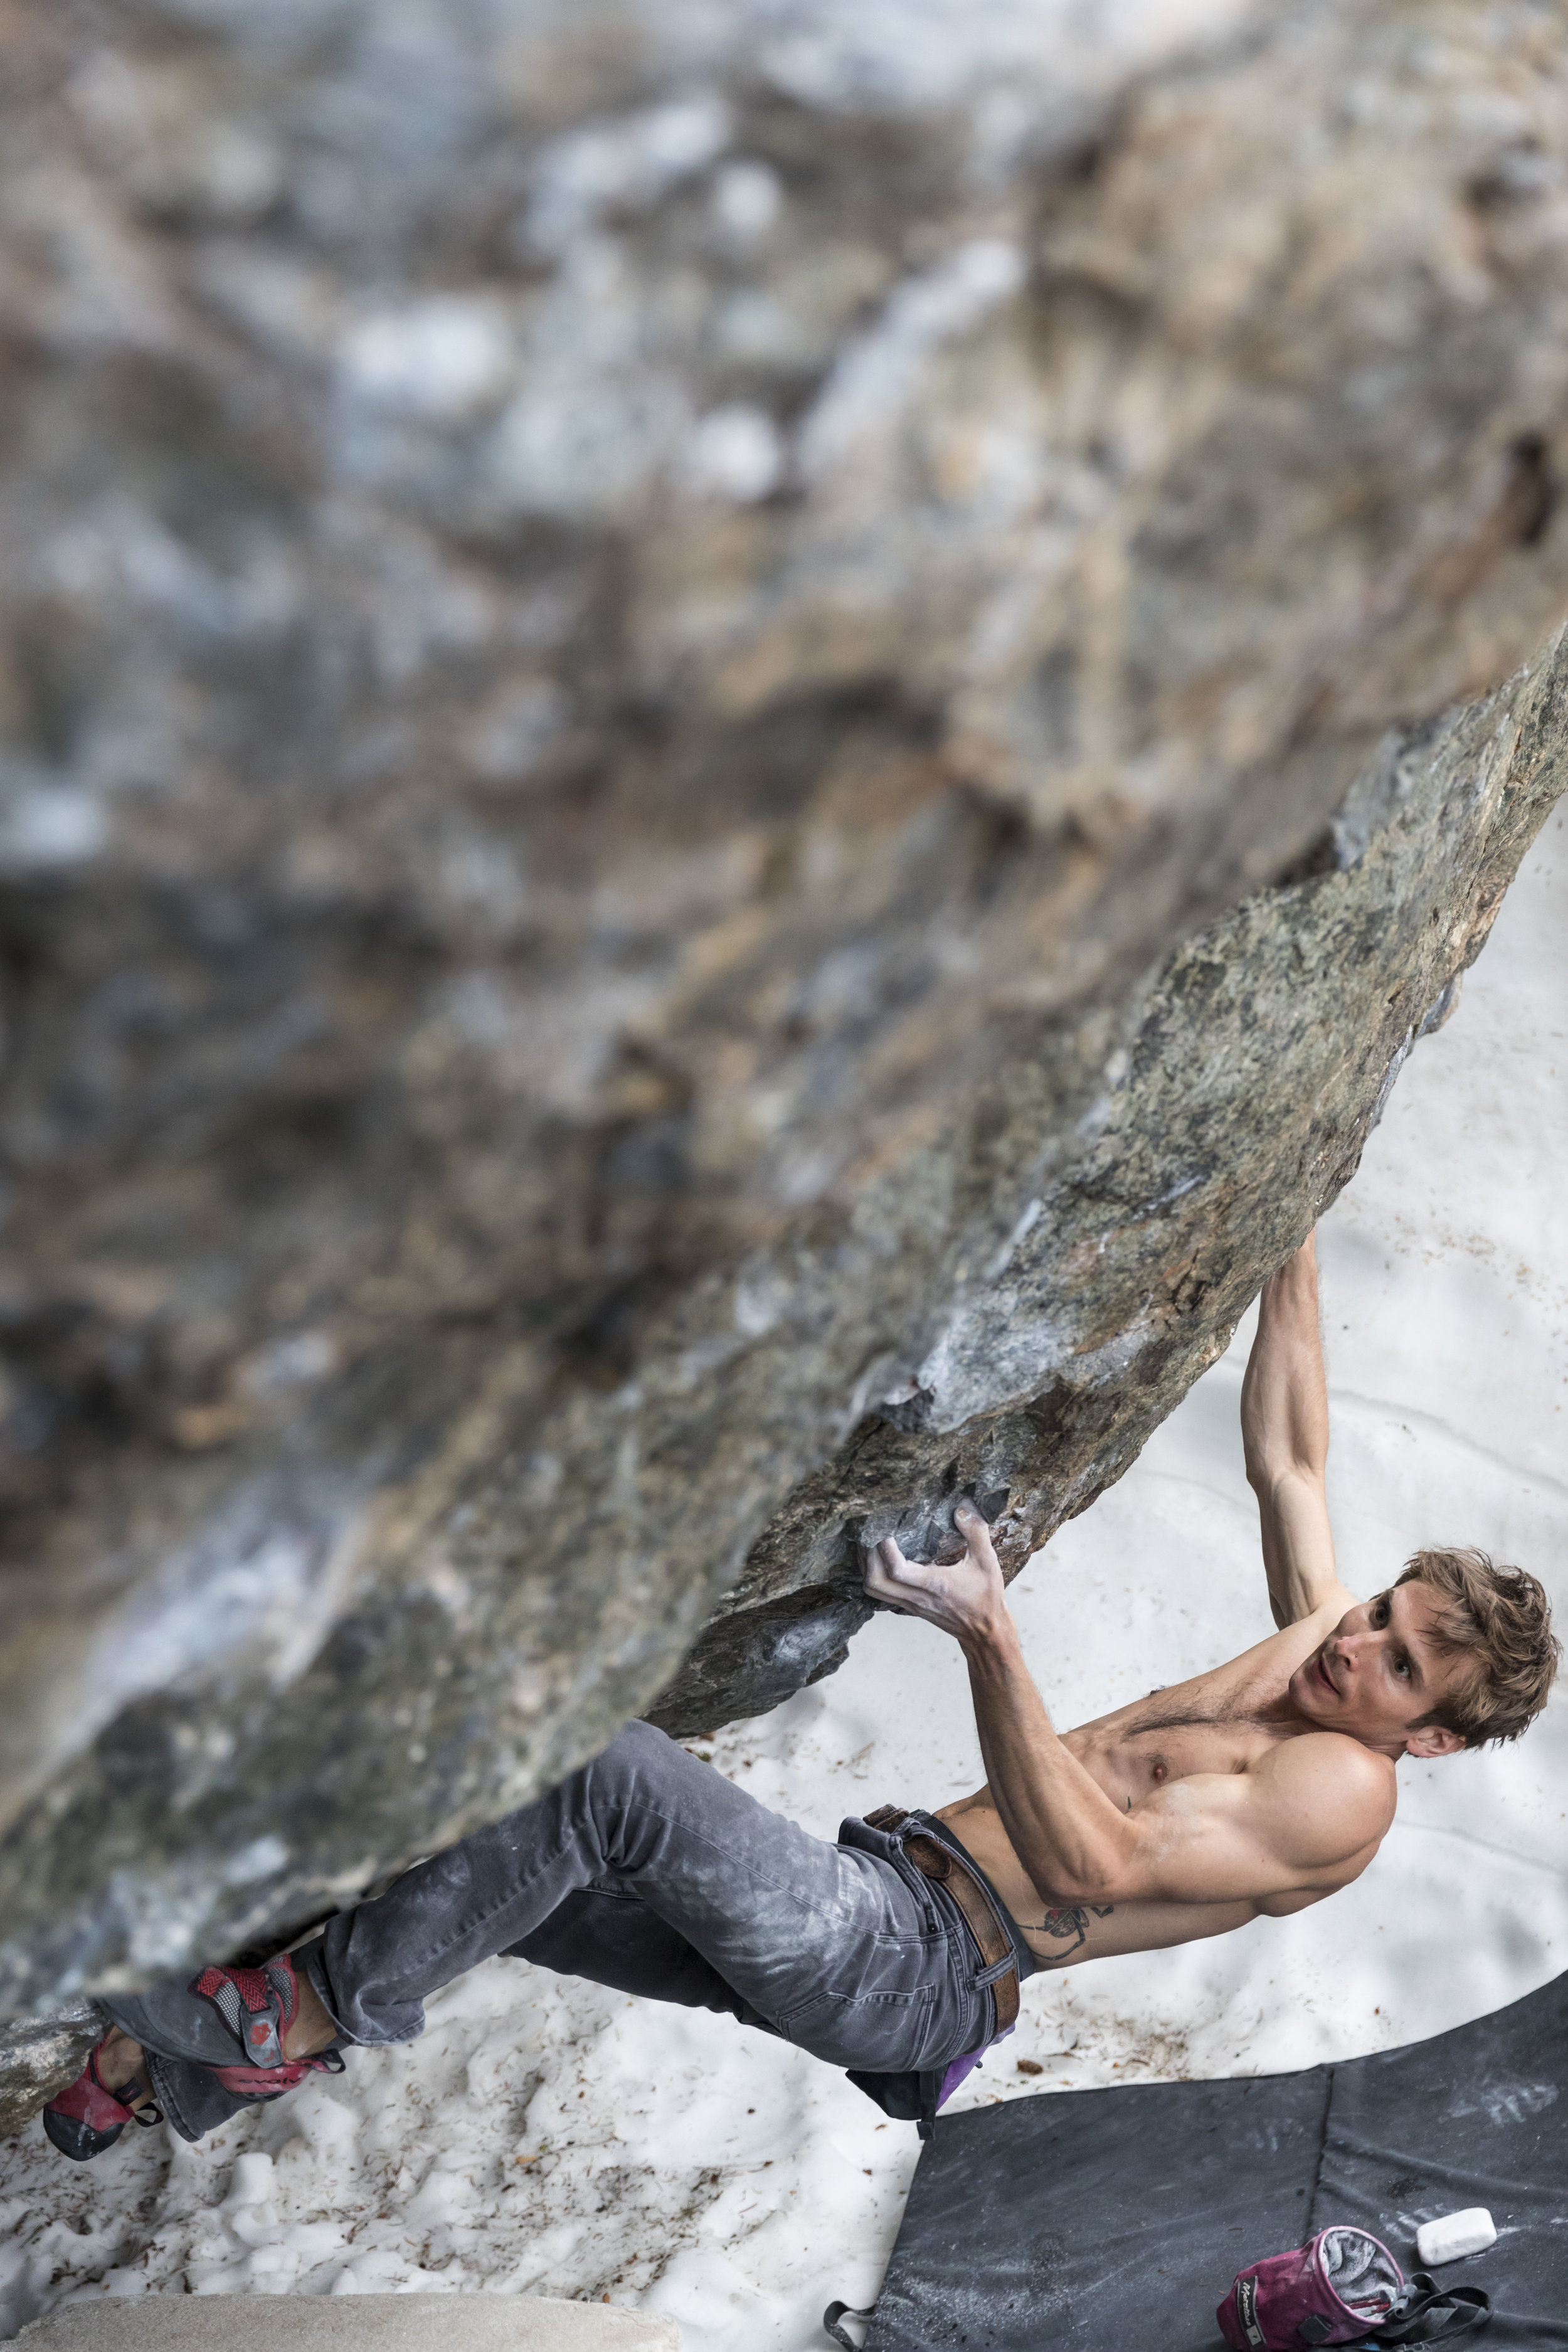 Daniel Woods on Aslan (V14/8B+) in Lower Chaos Canyon of Rocky Mountain National Park.